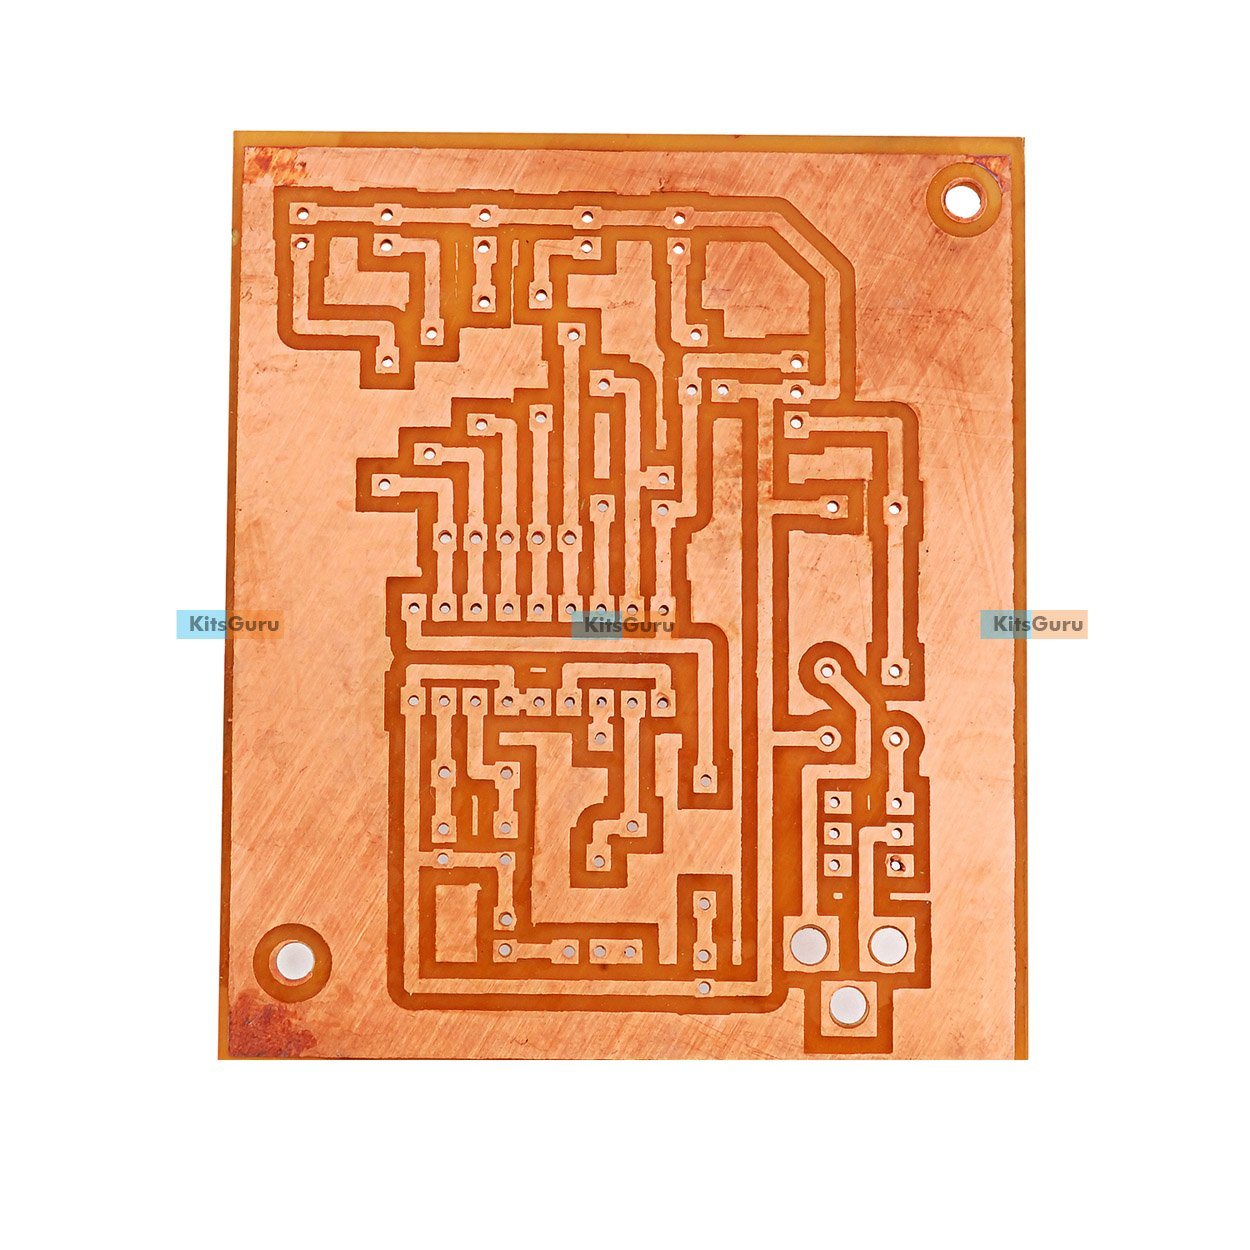 Diy Kit Dtmf Receiver Ic Mt8870 Tester Lgkt052 Projects Decoder Working Electronic Circuits Youtube